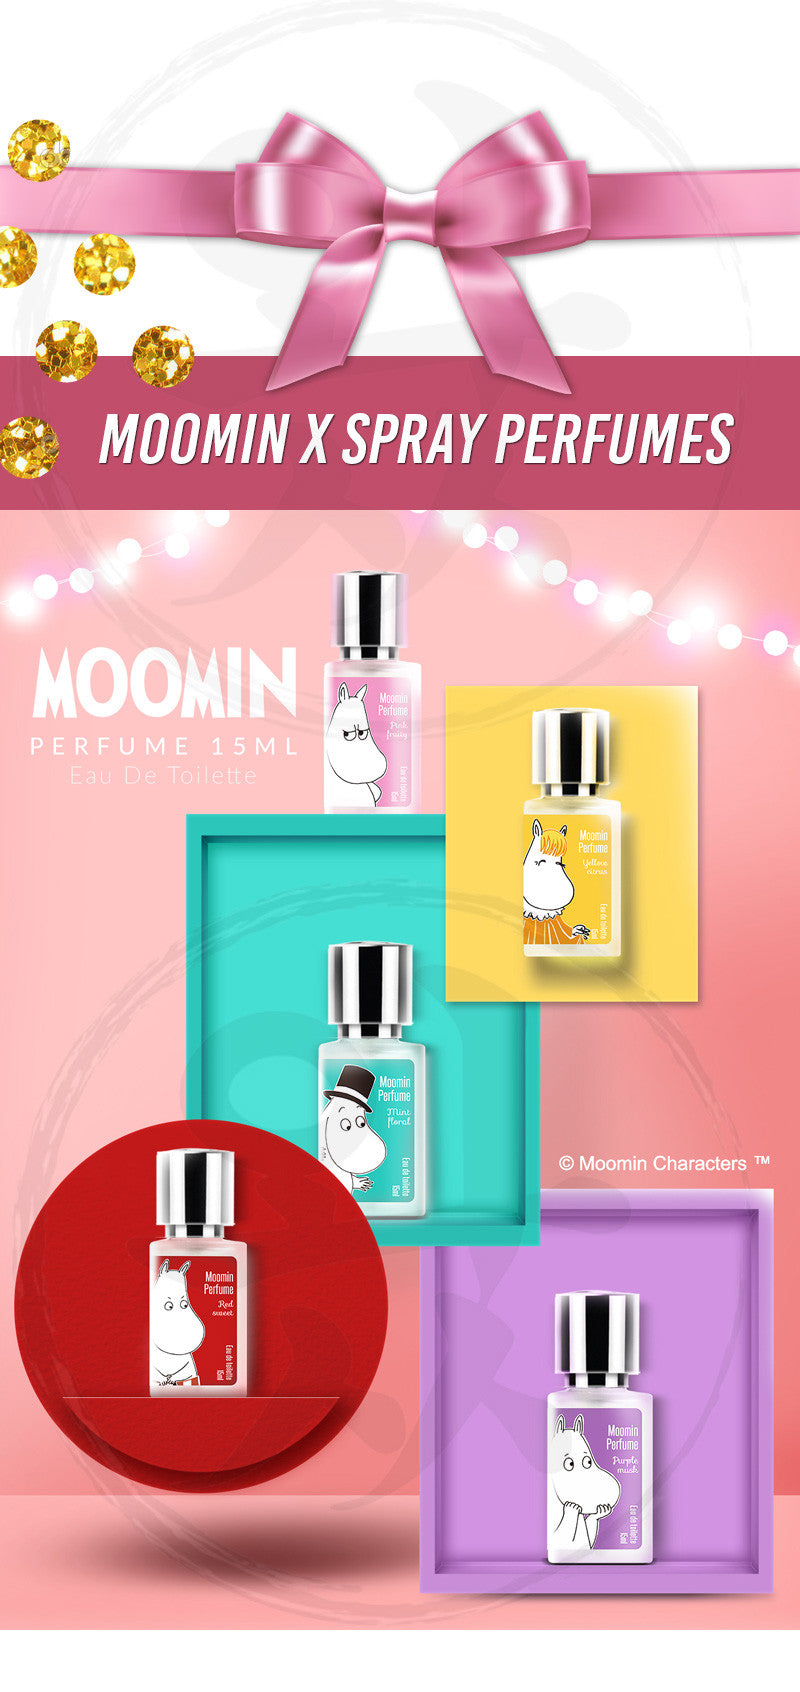 Check out our spray perfumes with the exact same scents from our Moomin Perfume Balms!